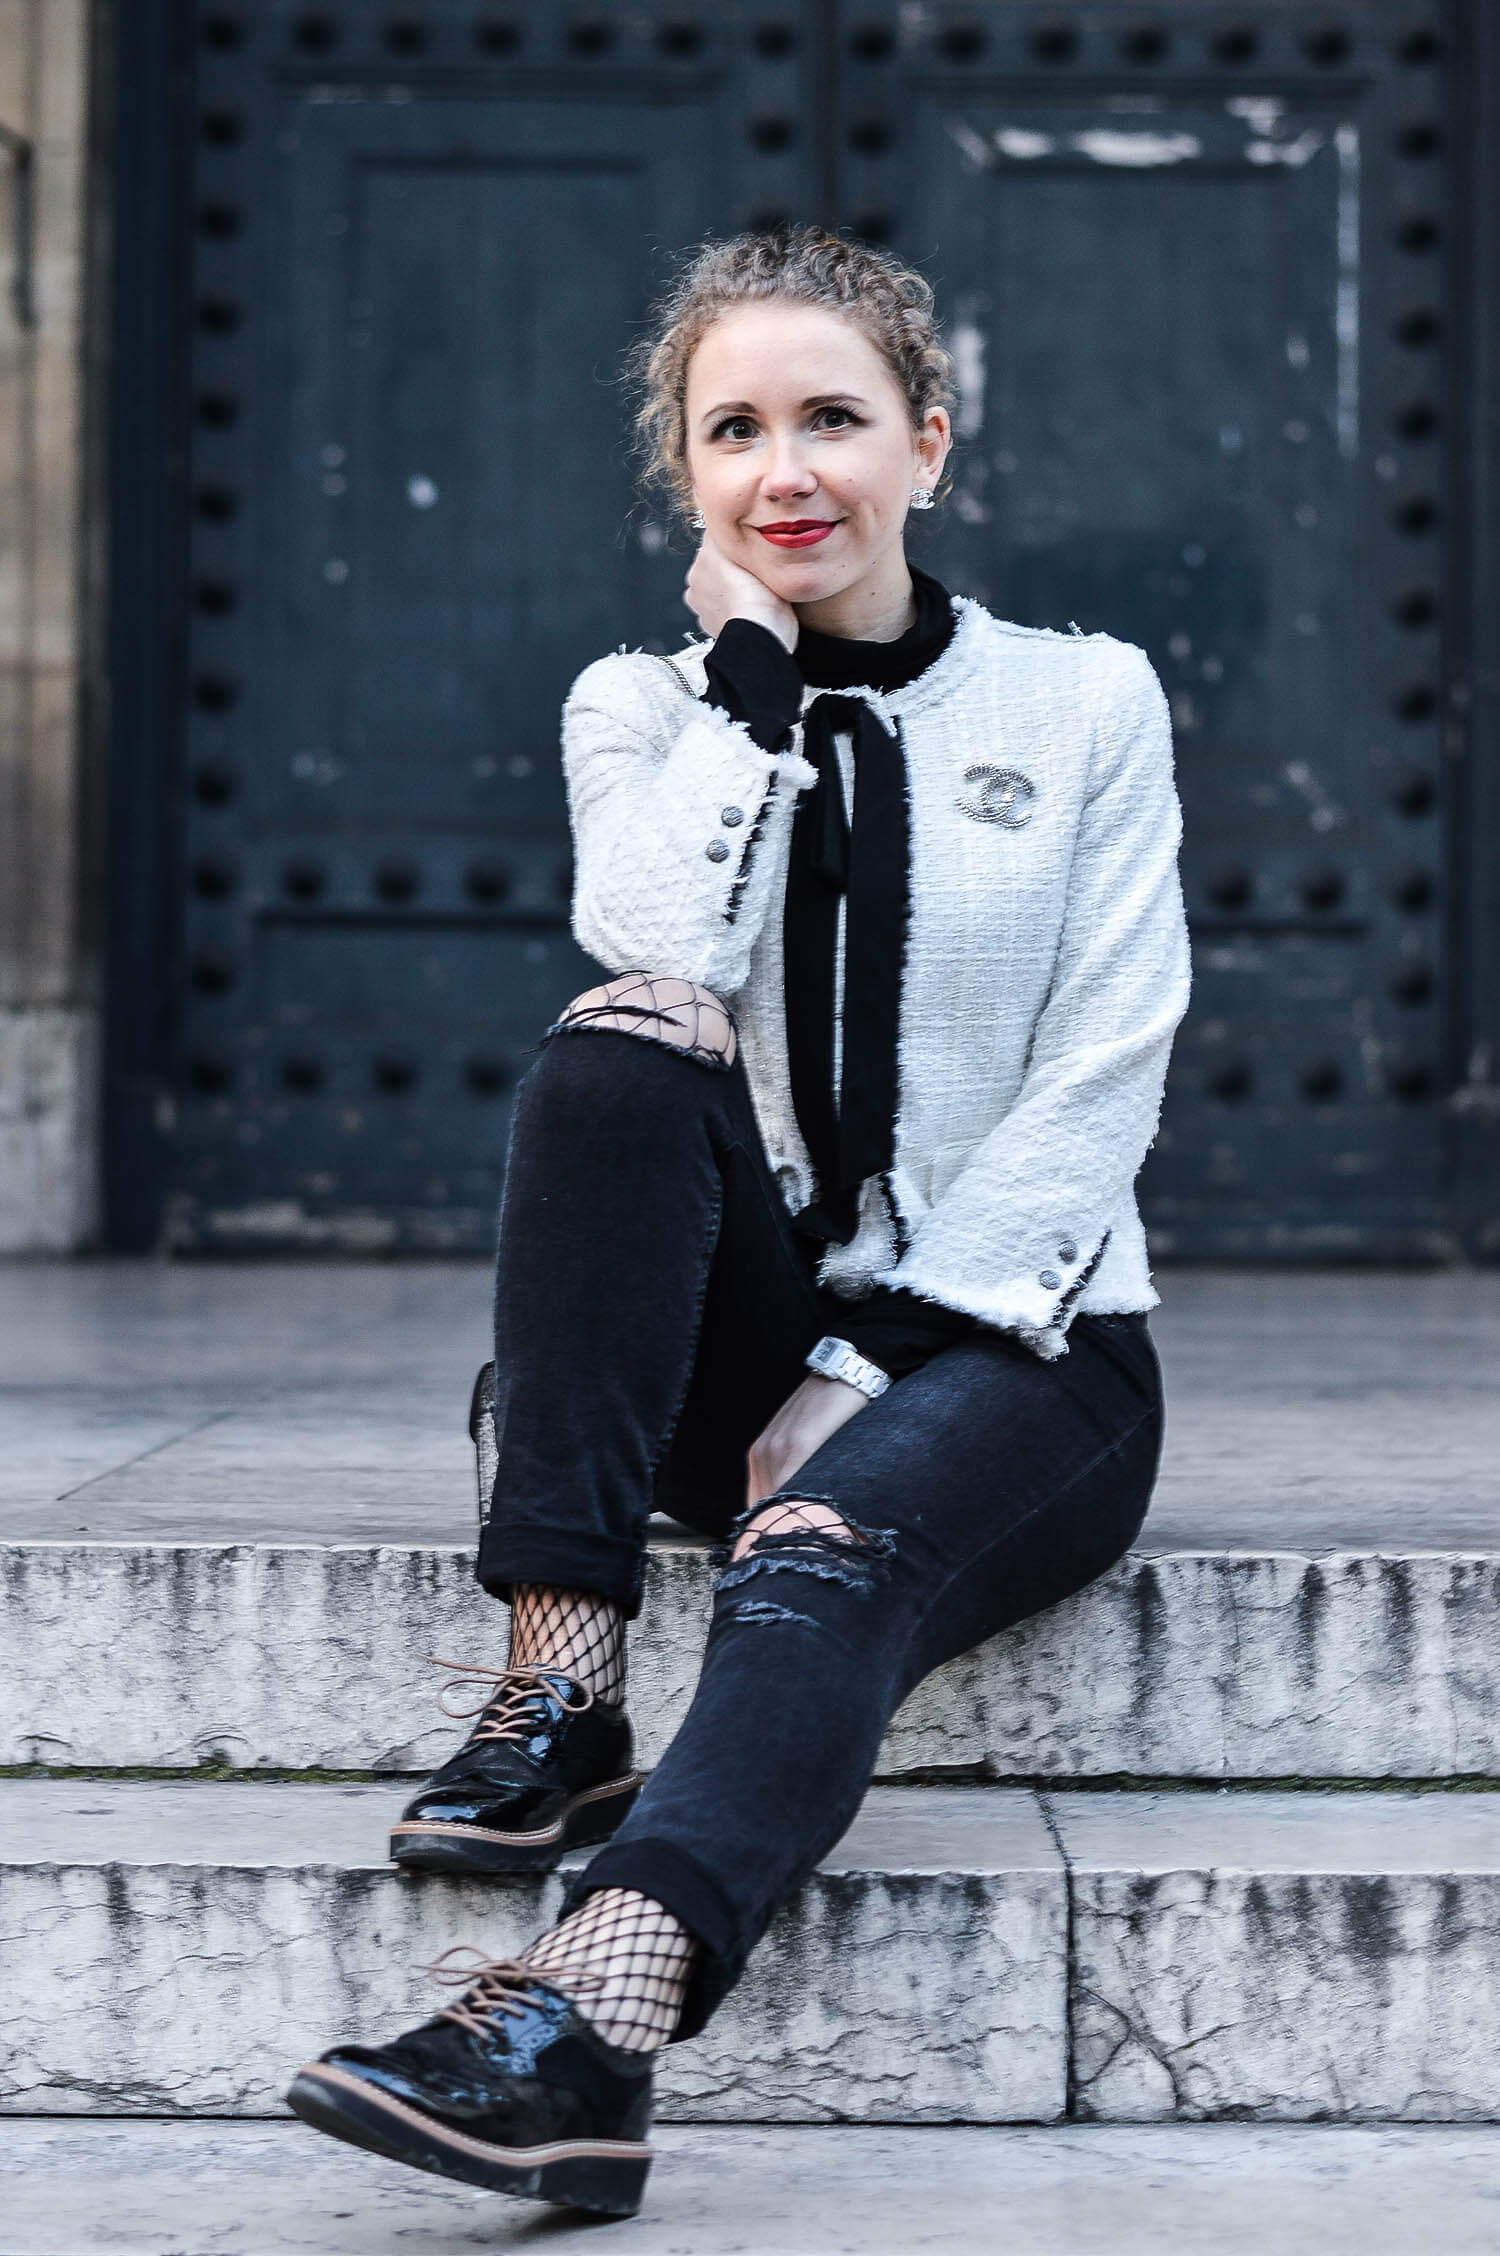 Kationette-fashionblog-nrw-Outfit-Zara-Tweed-Jacket-Ripped-Jeans-Chanel-Jewelry-Paris-streetstyle